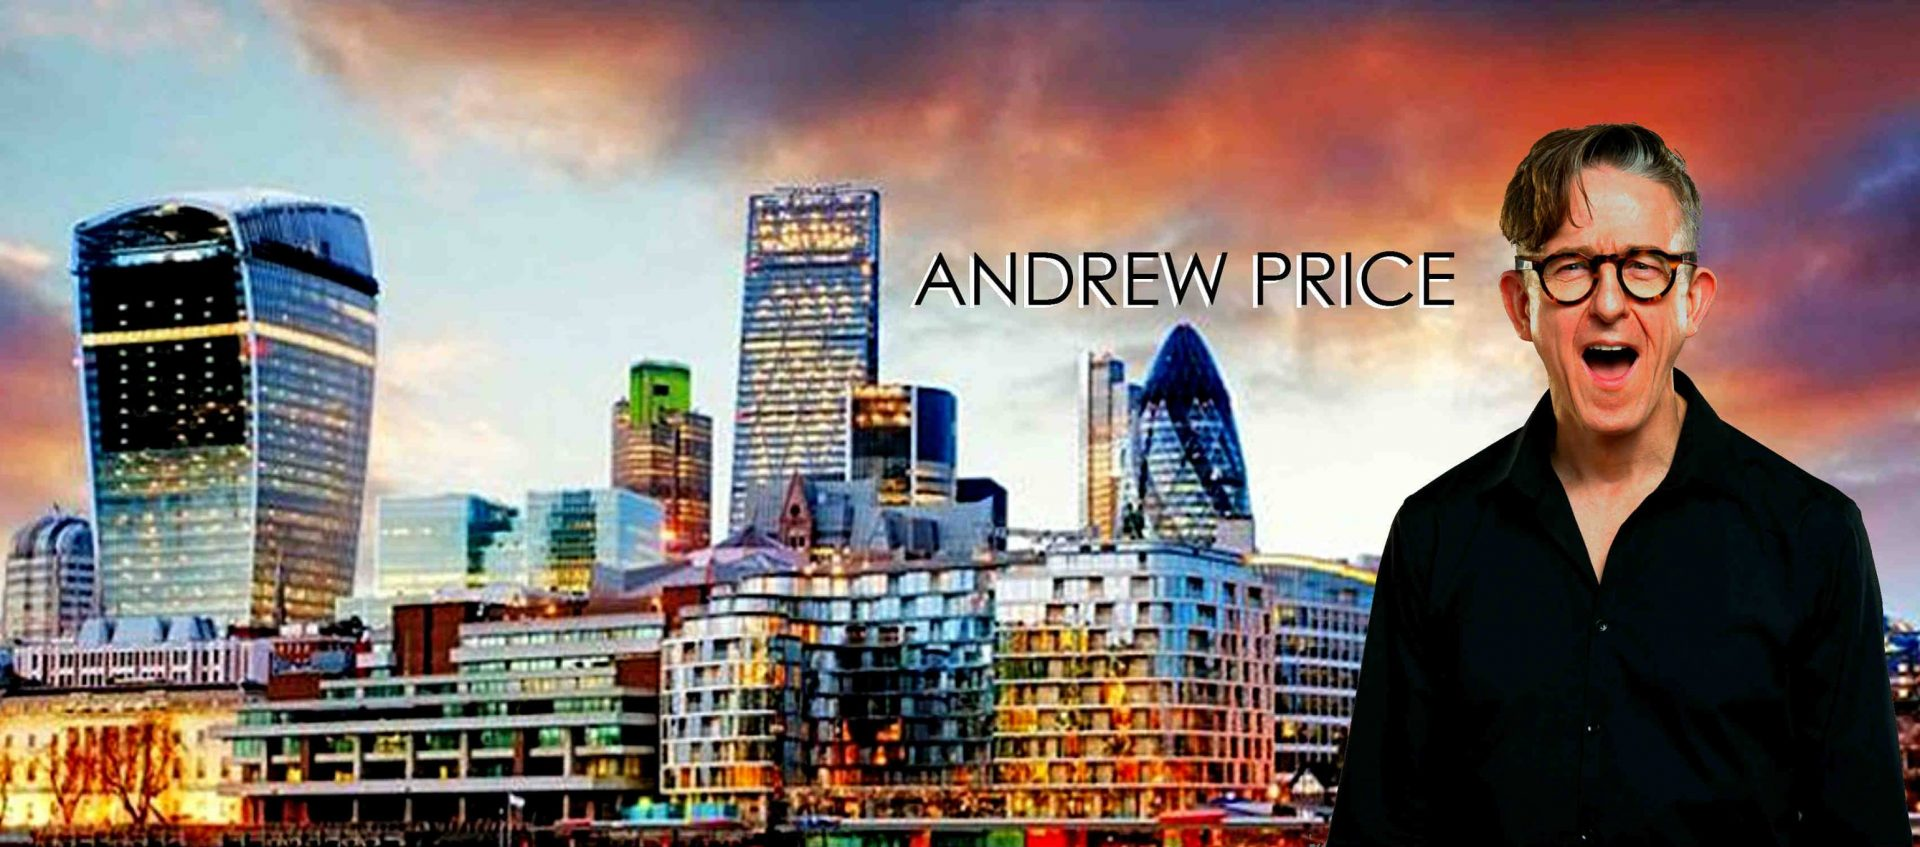 Andrew Price Actor